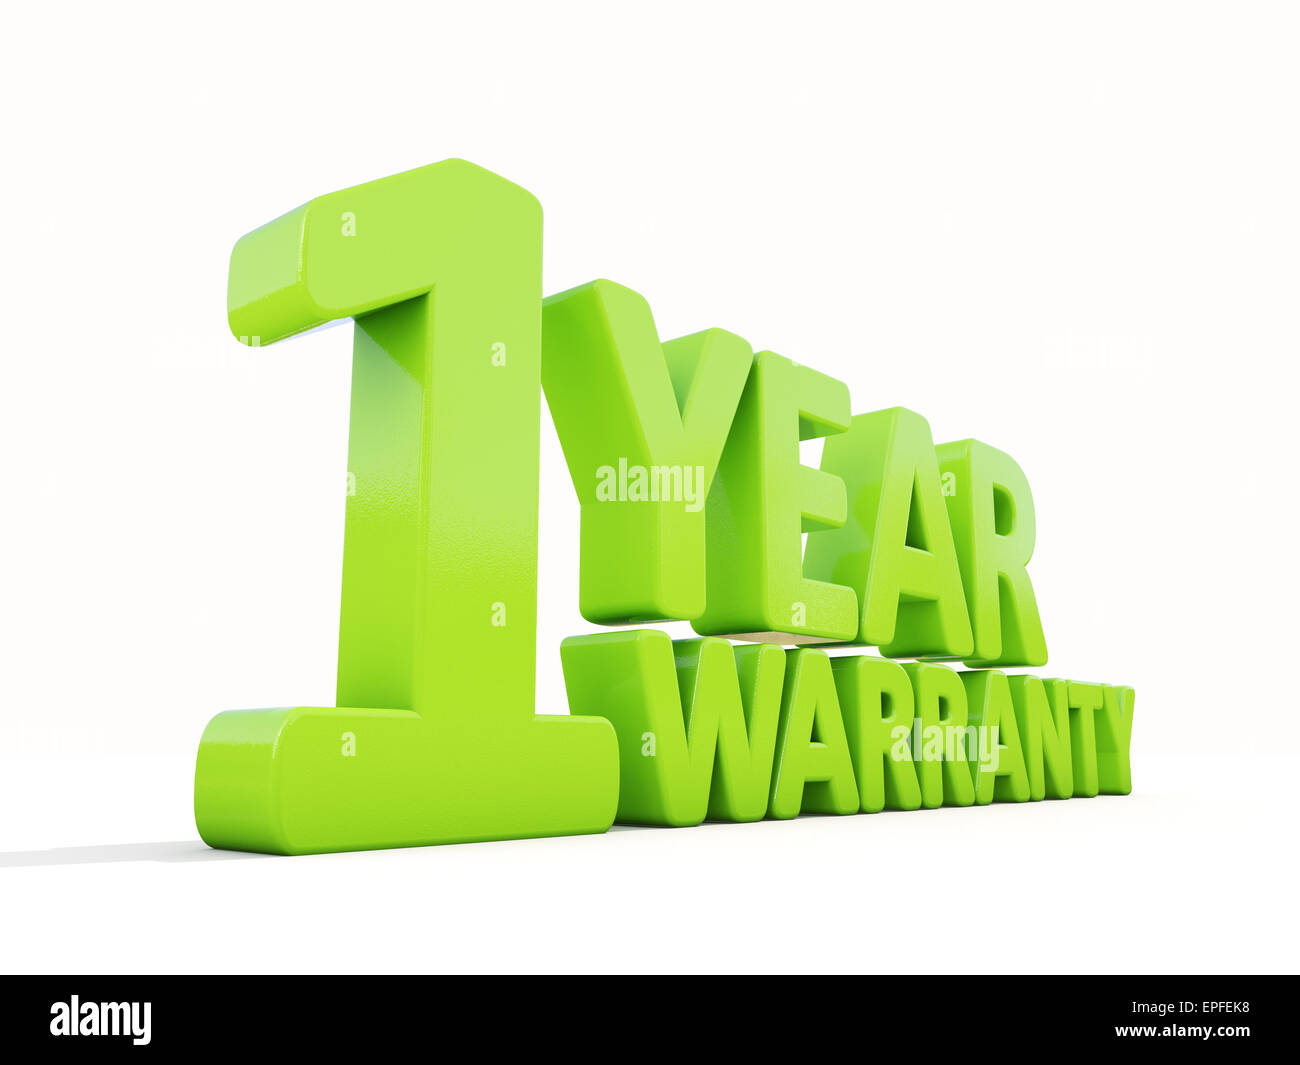 Warranty - Stock Image